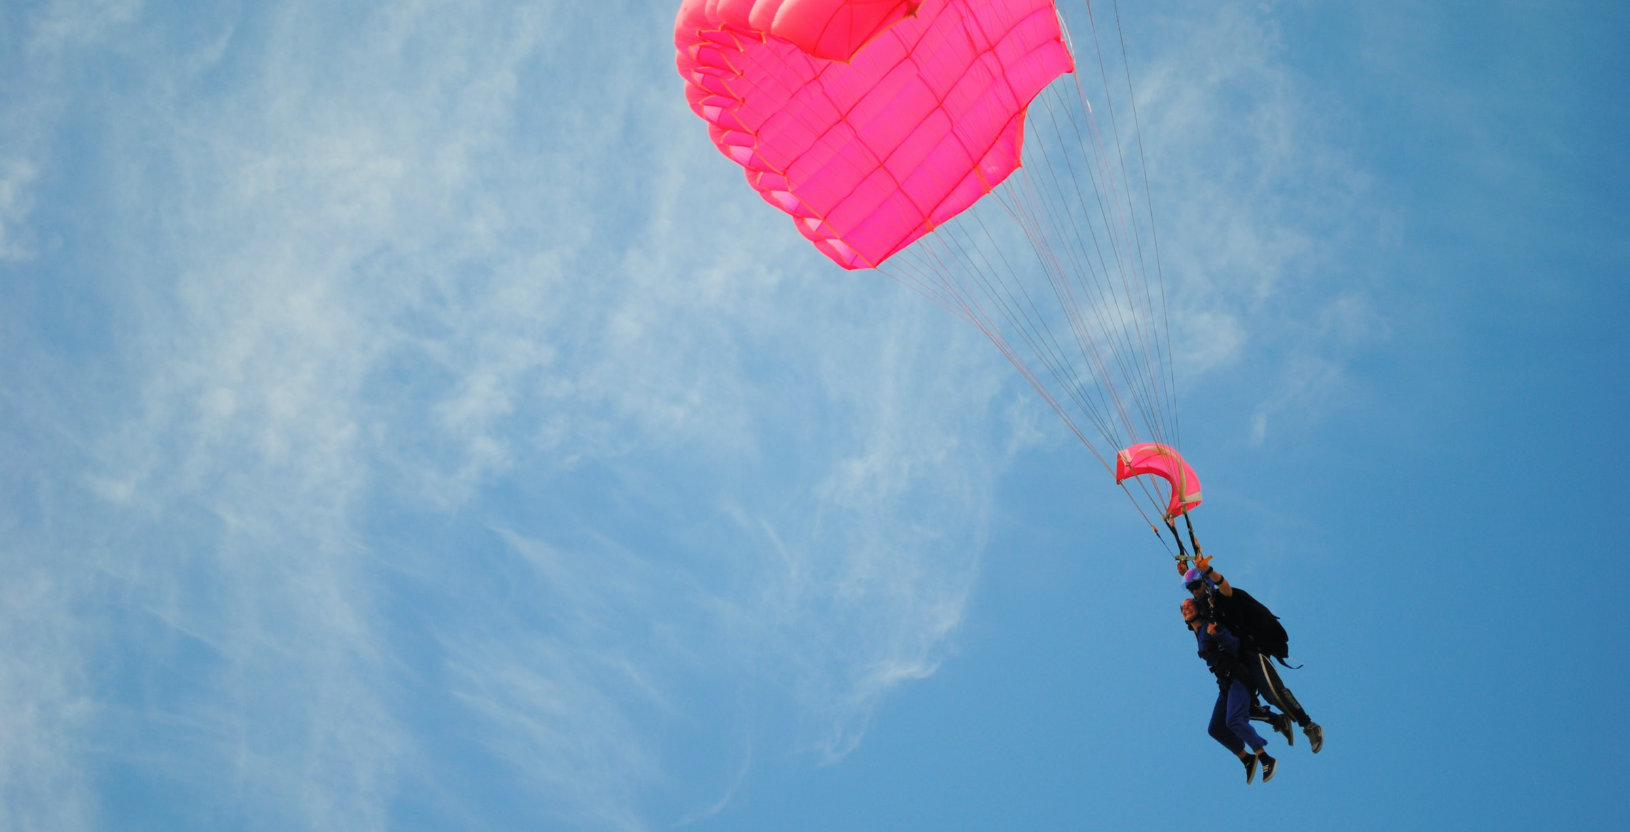 Tandem skydivers with a pink parachute canopy